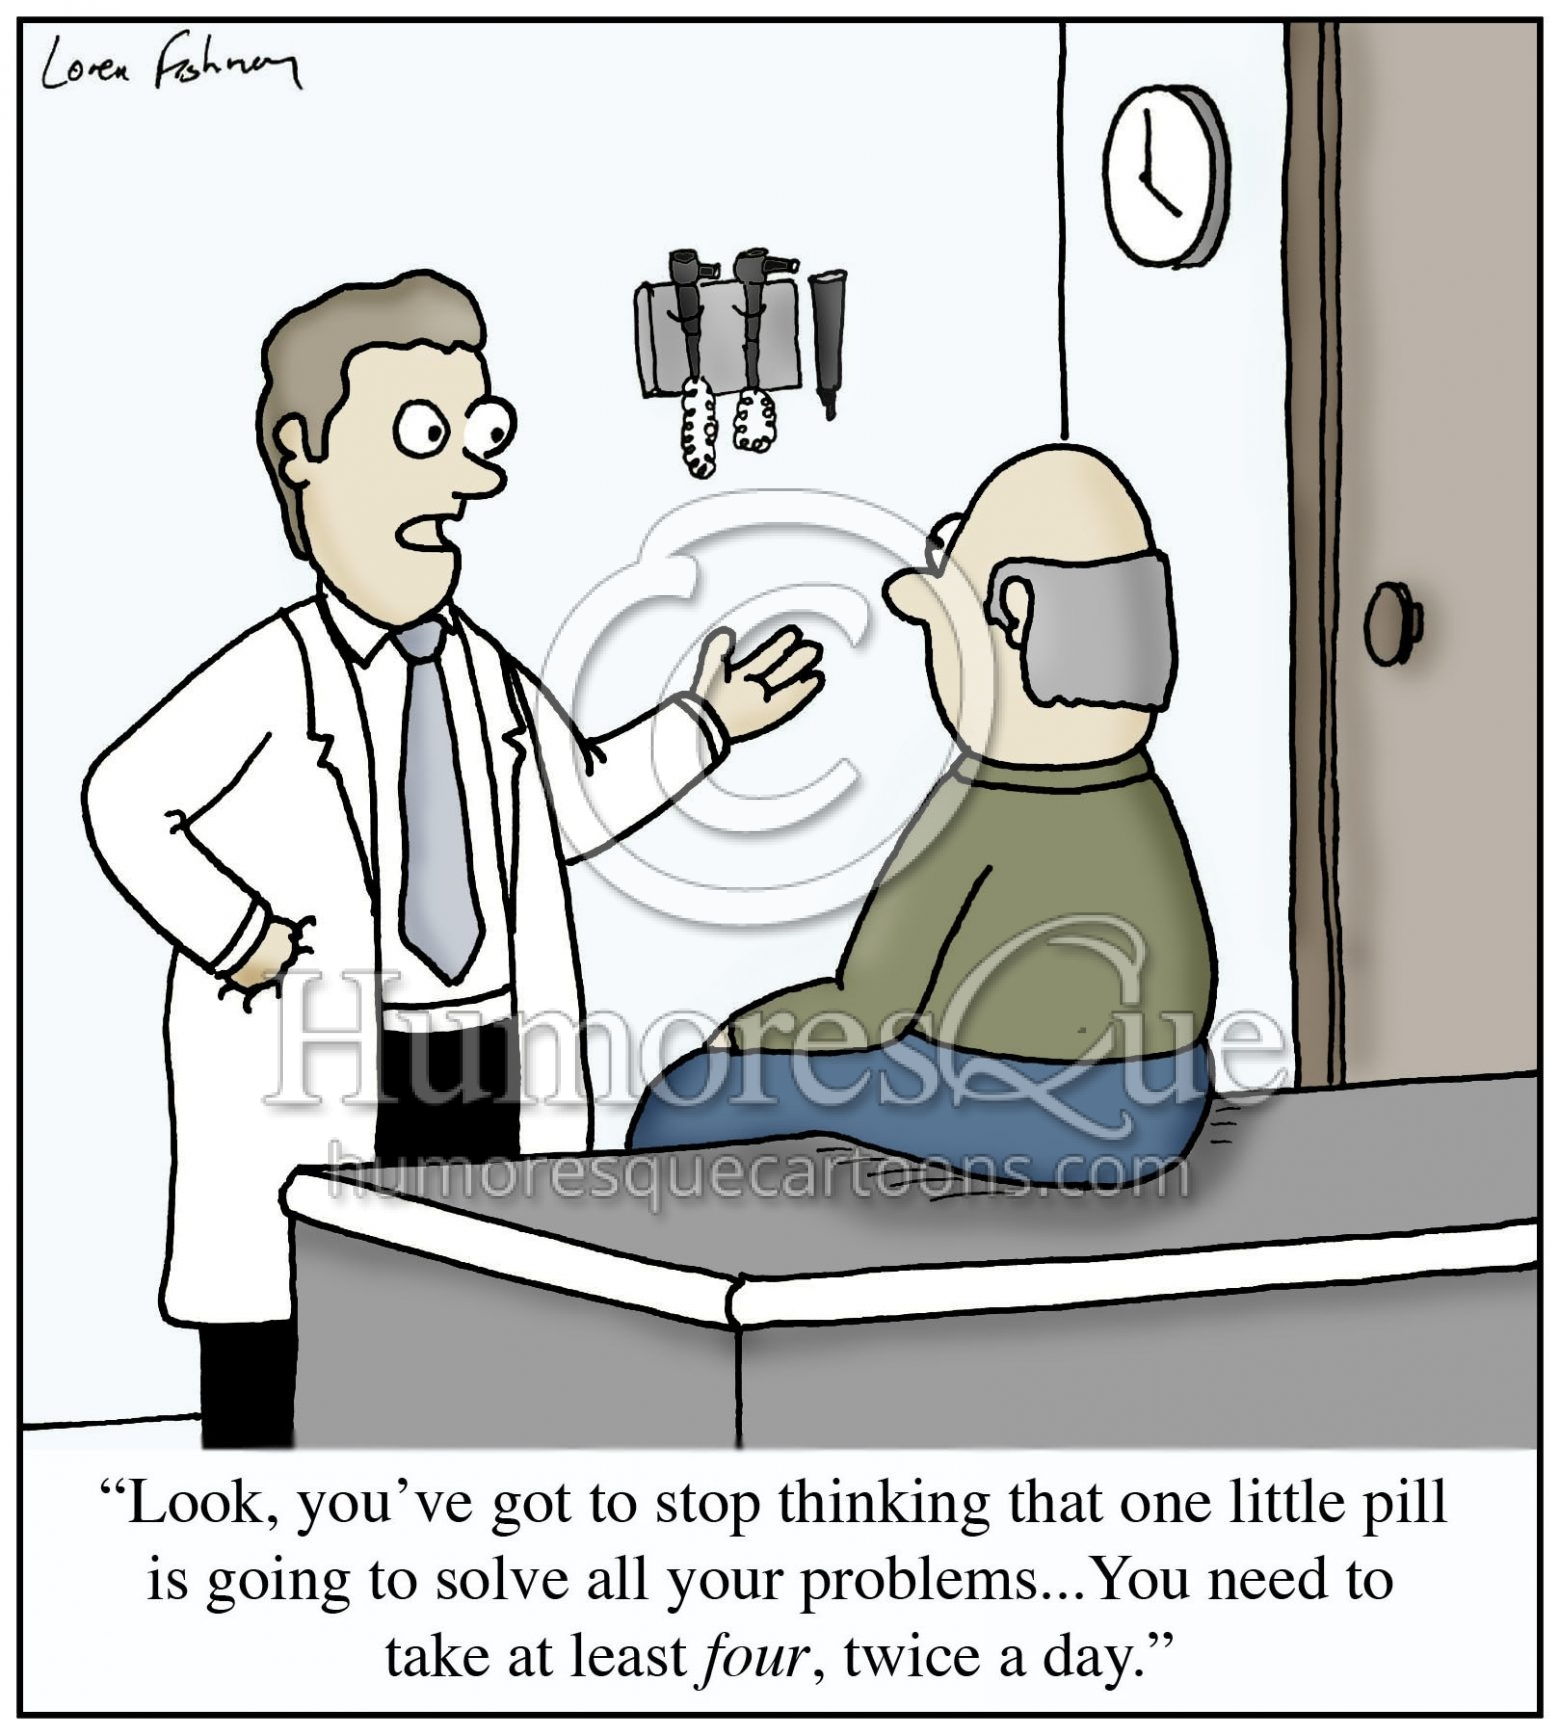 prescription drugs medical cartoon